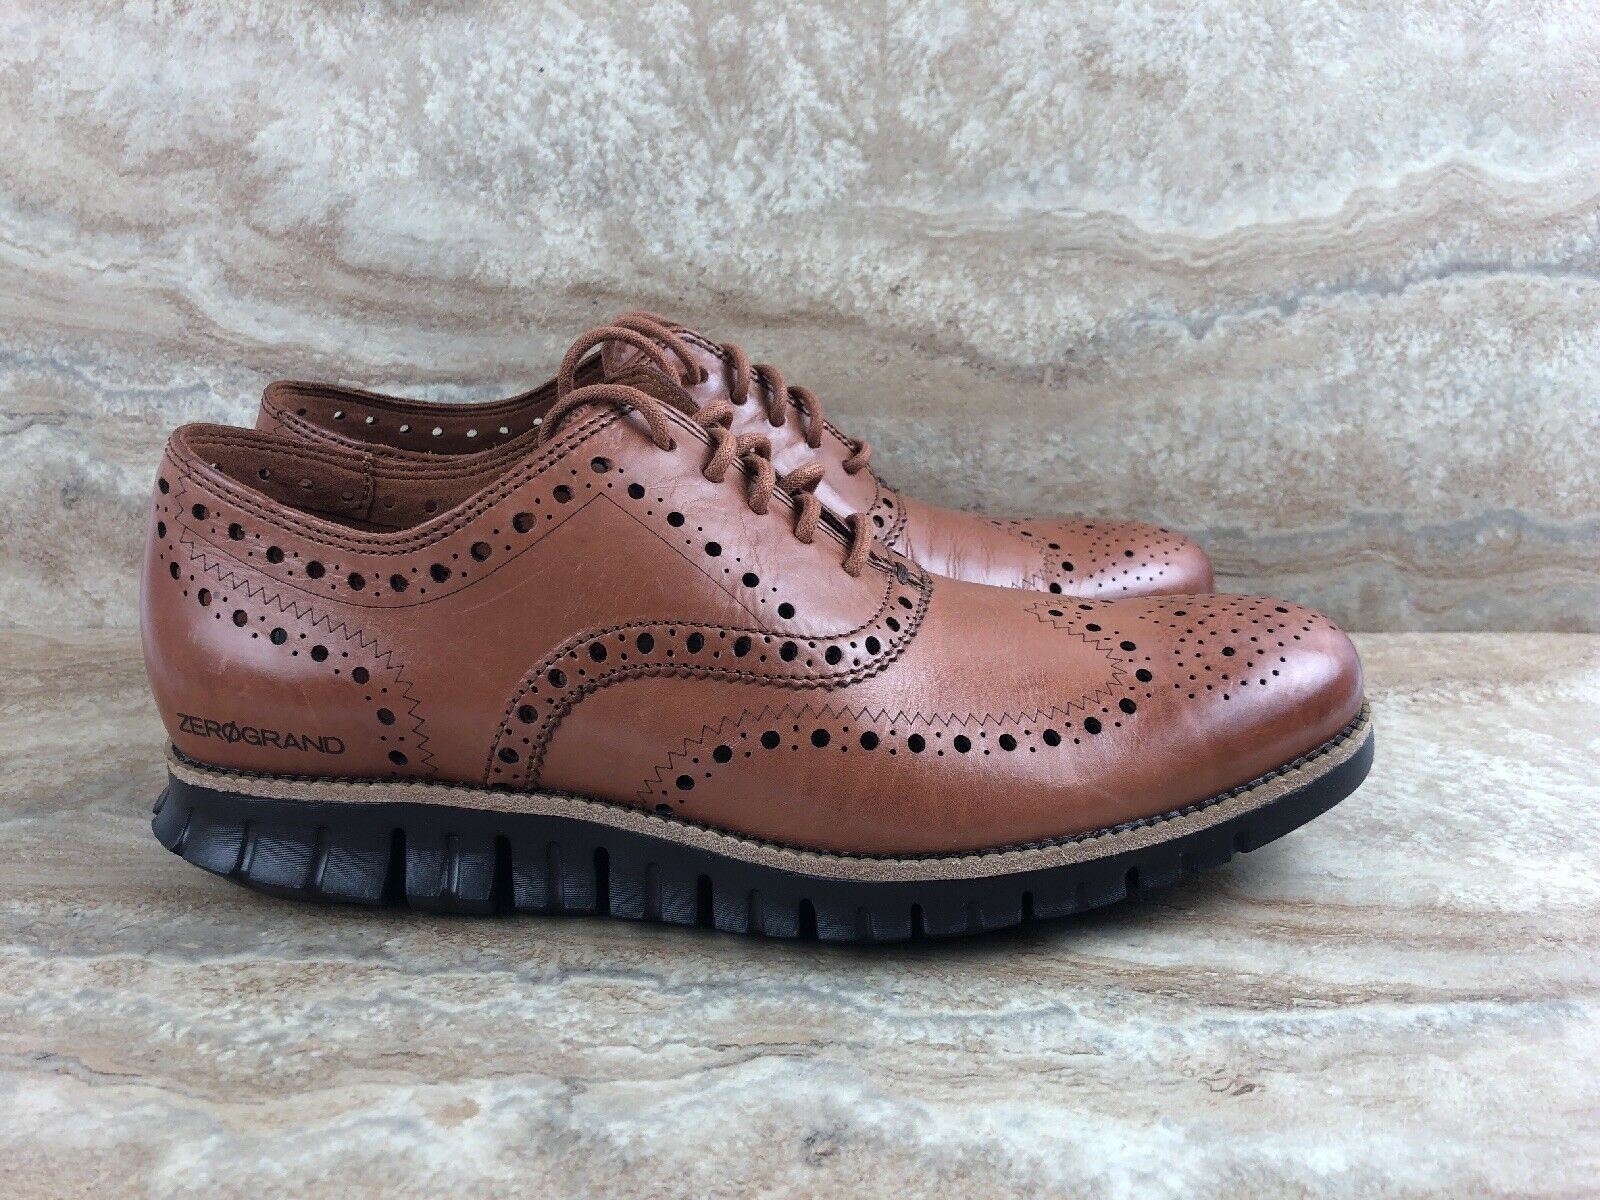 Cole Haan Zerogrand Wingtip Oxford Leather Dress shoes British Tan